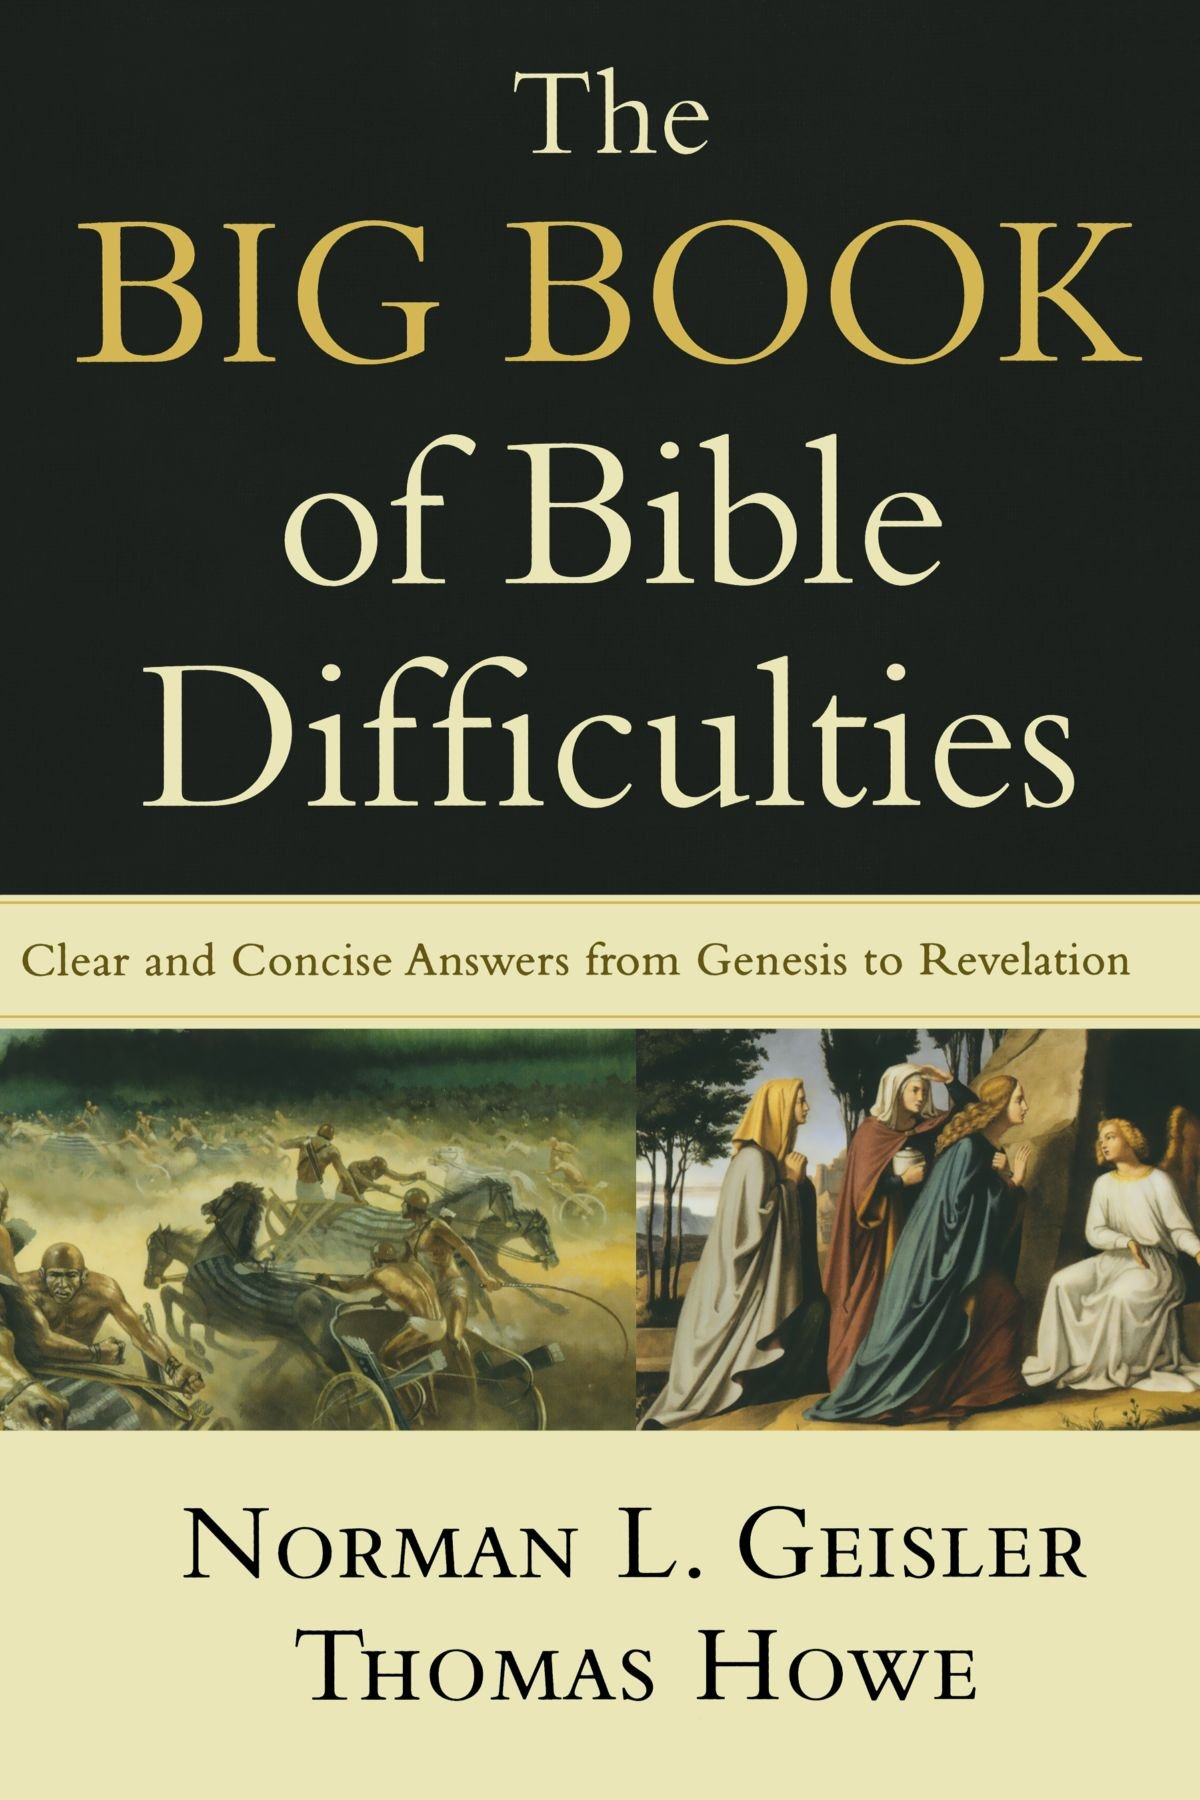 The Big Book of Bible Difficulties: Clear and Concise Answers from Genesis to Revelation by Norman L. Geisler and Thomas Howe